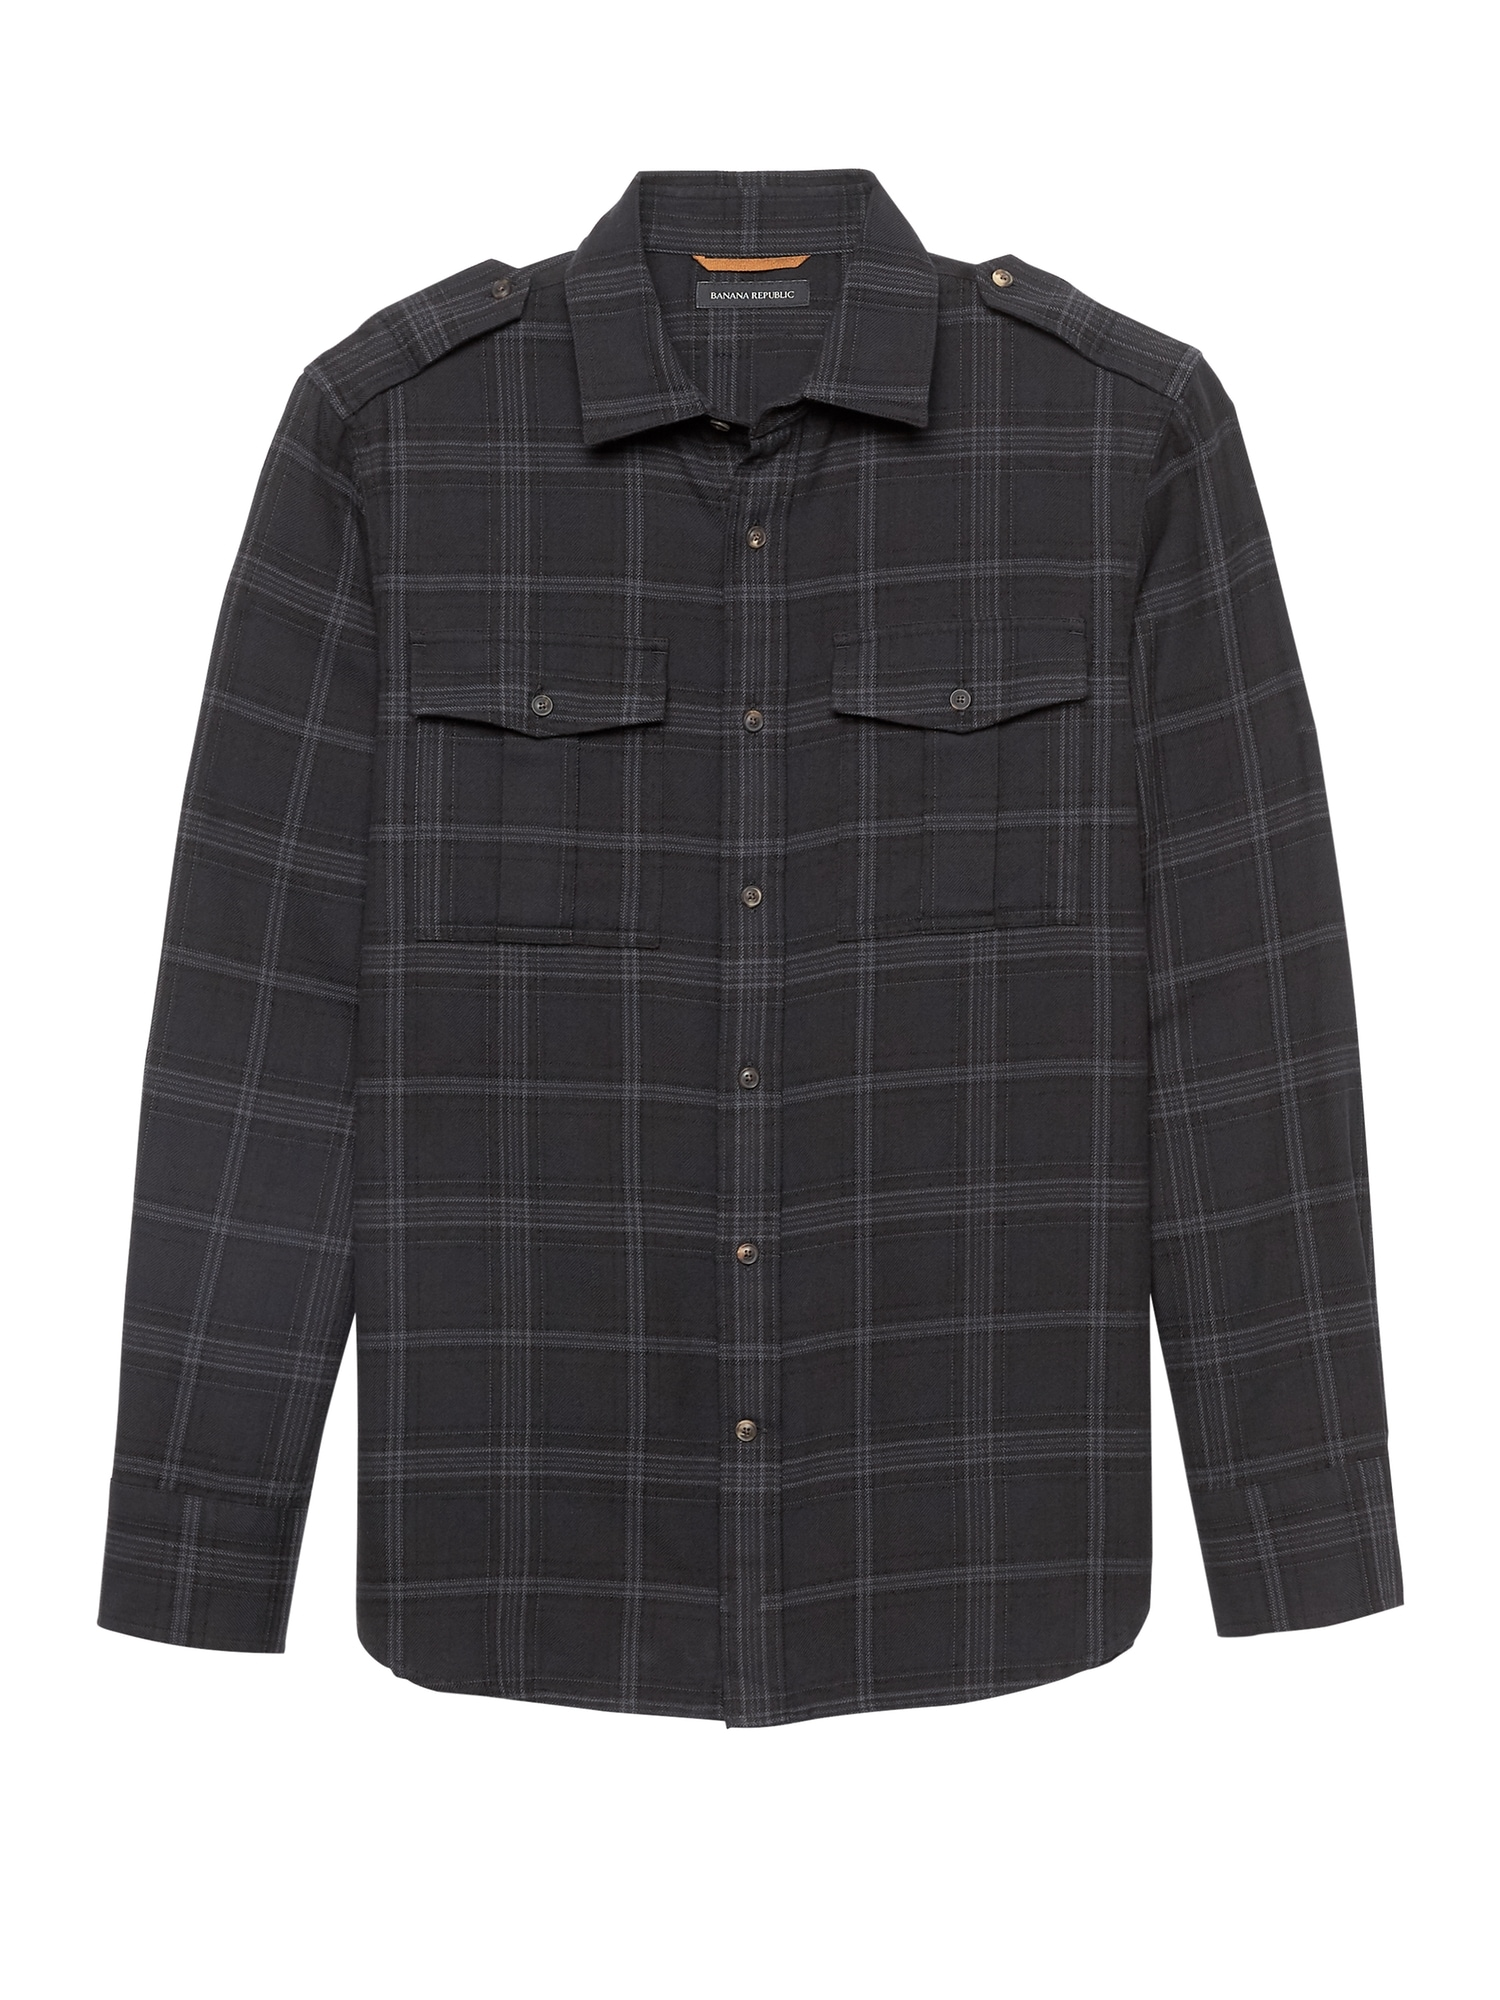 09d68bb4a Heritage NEW Slim-Fit Flannel Plaid Shirt Jacket